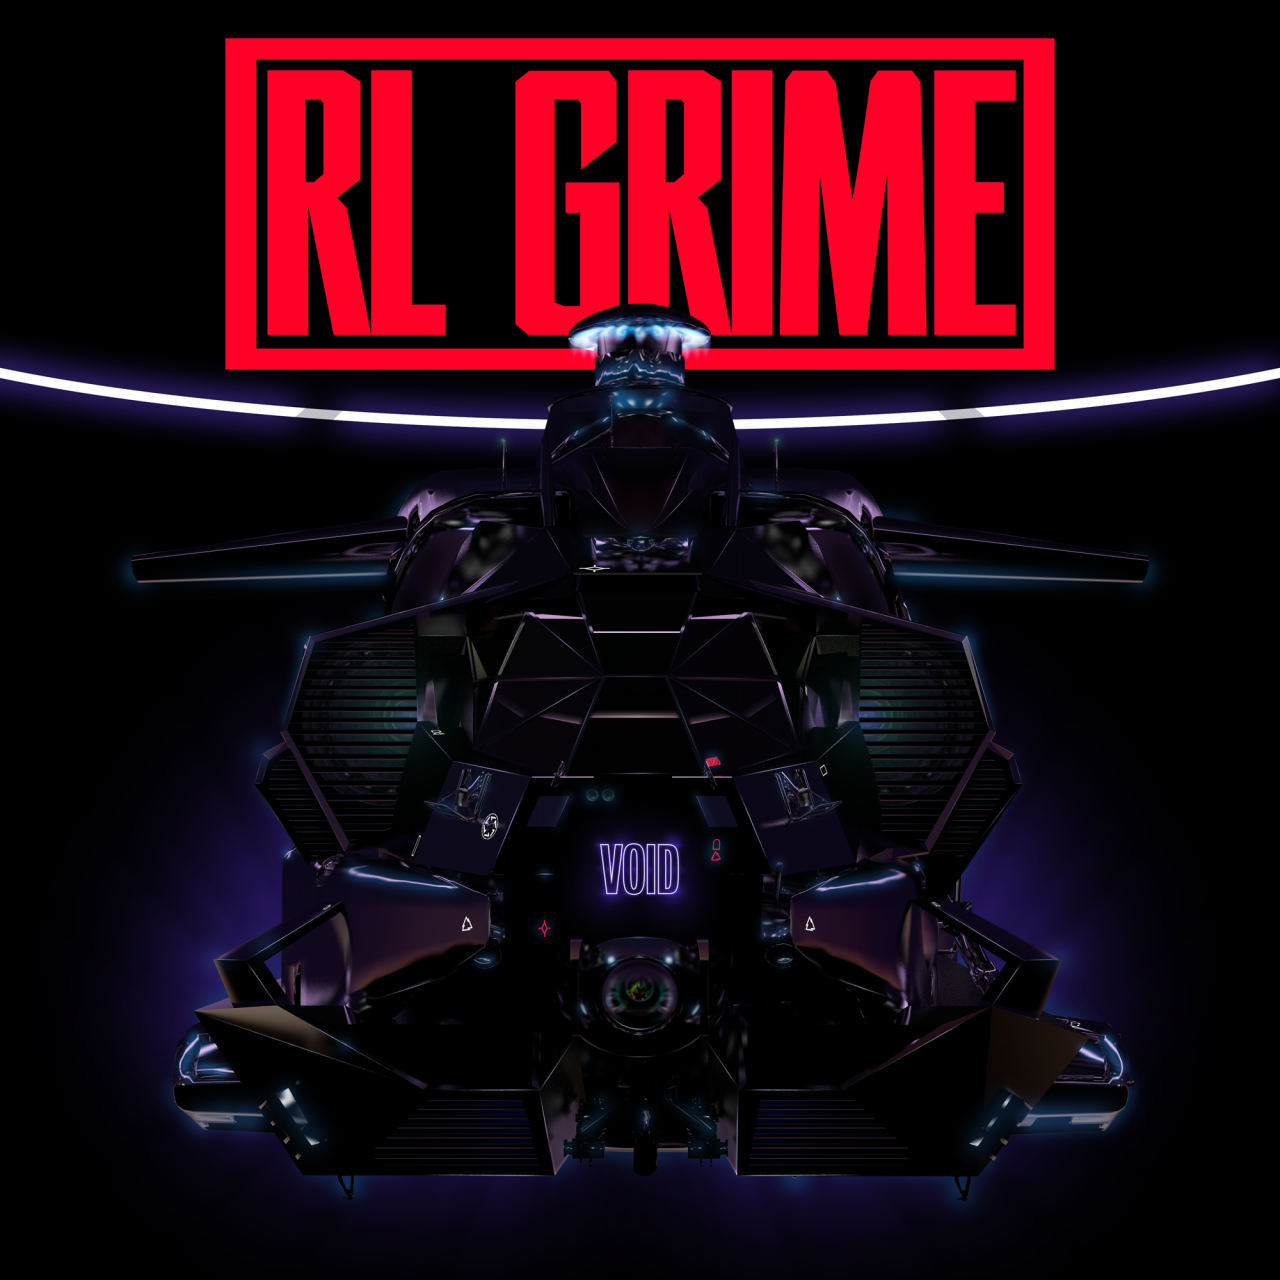 RL Grime's 'Core' is four years old: remembering its greatnessRL Grime Void Core